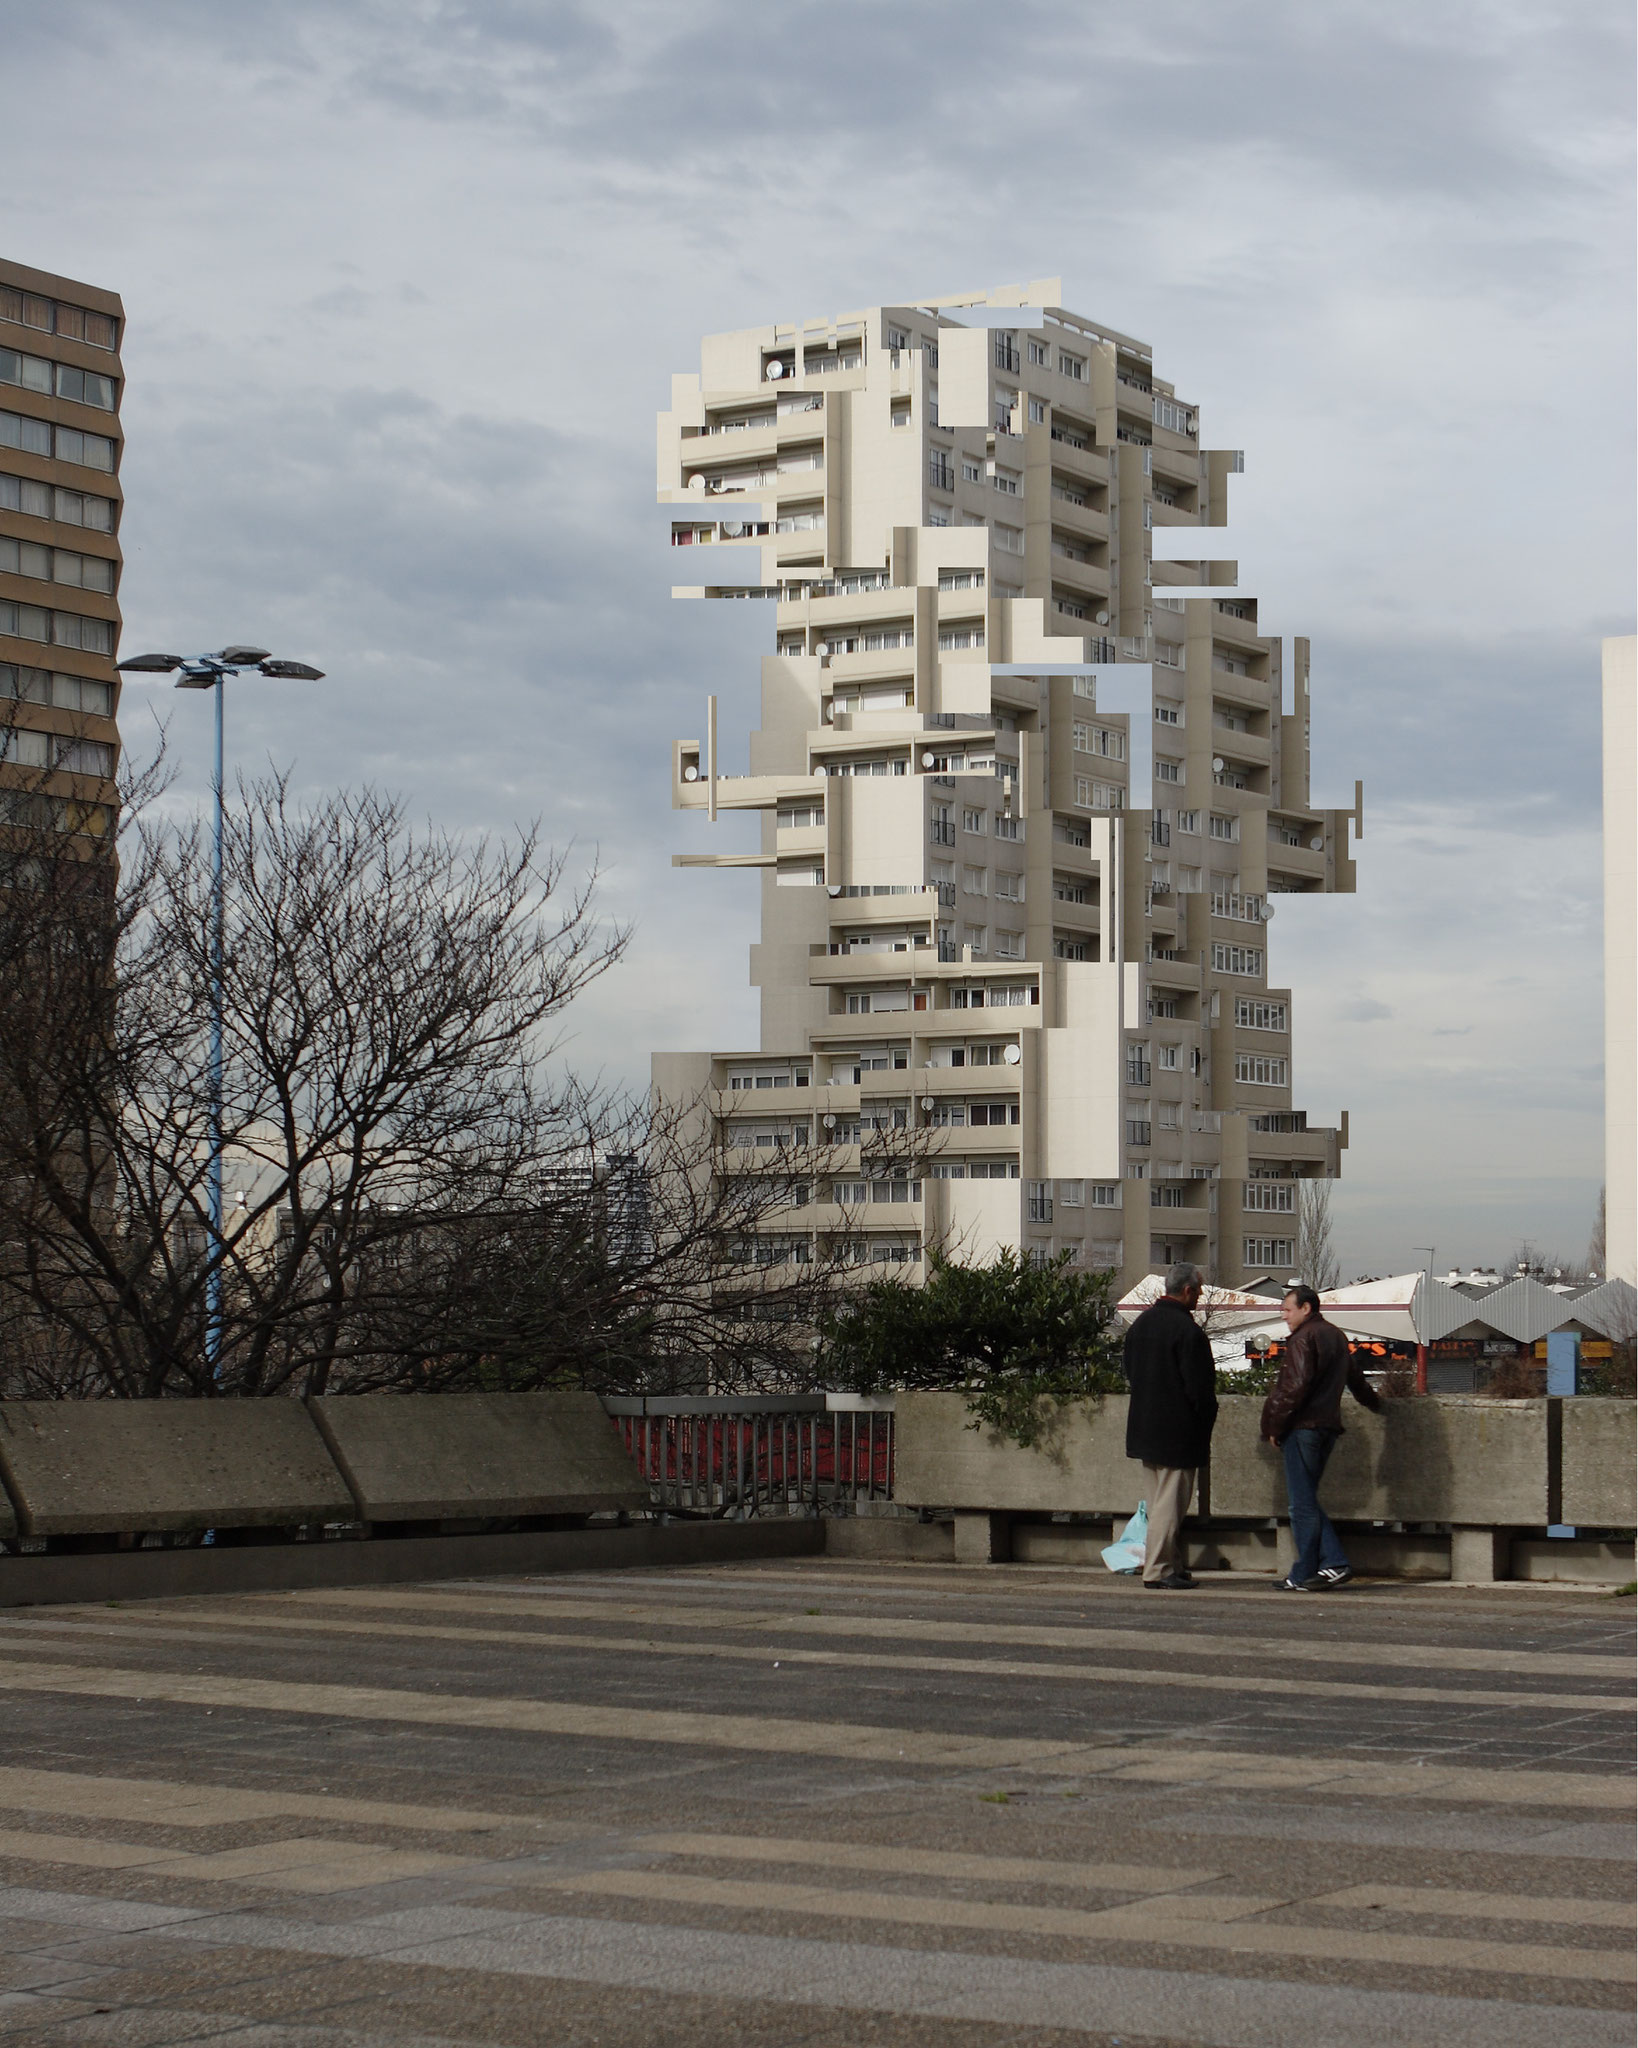 Y'S v1 (Anarchitecture from WYSI*not*WYG project by Olivier Ratsi)